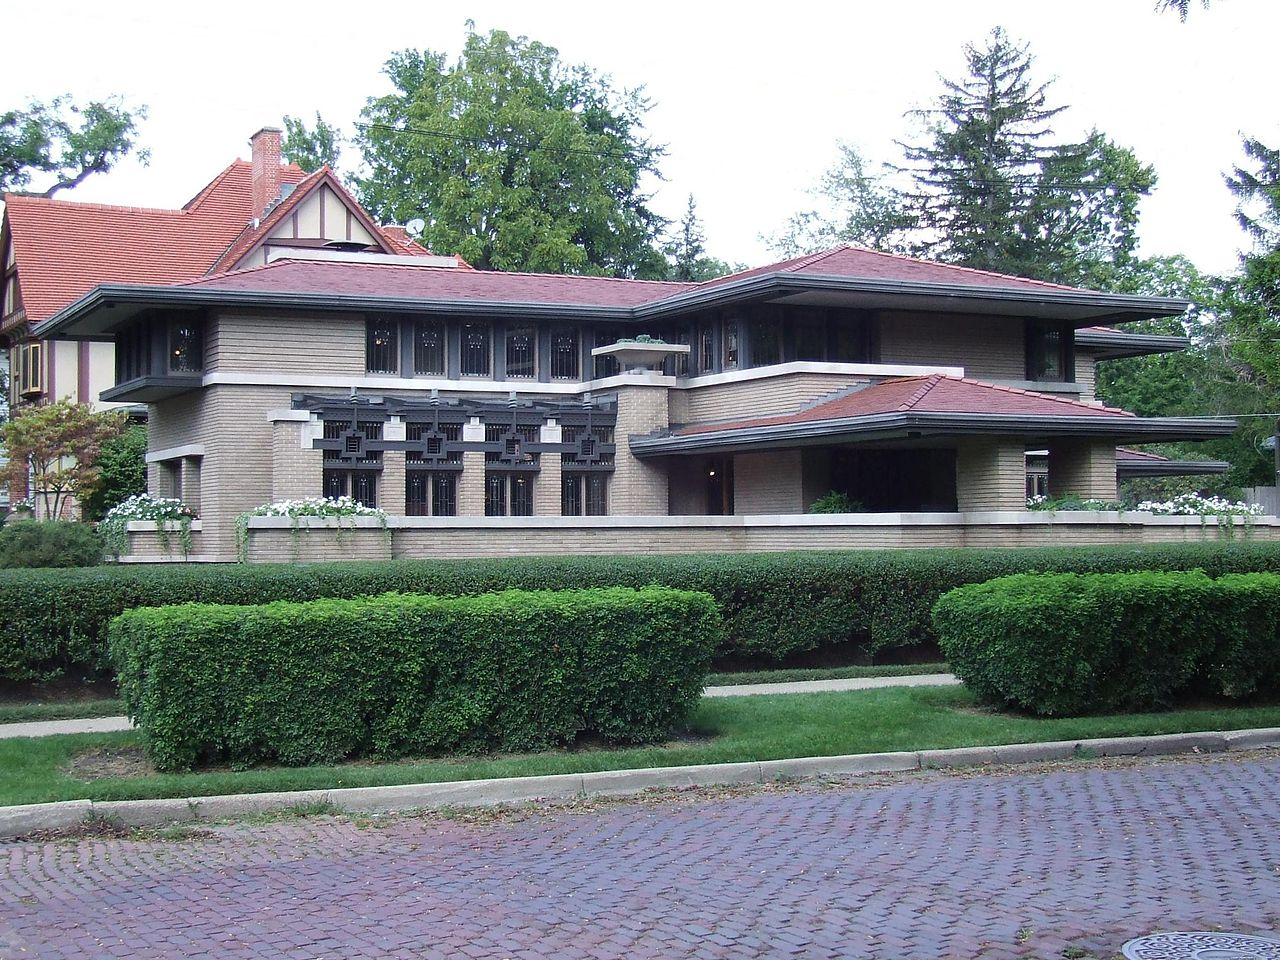 1280px-Meyer_May_House,_south_side,_2009.JPG